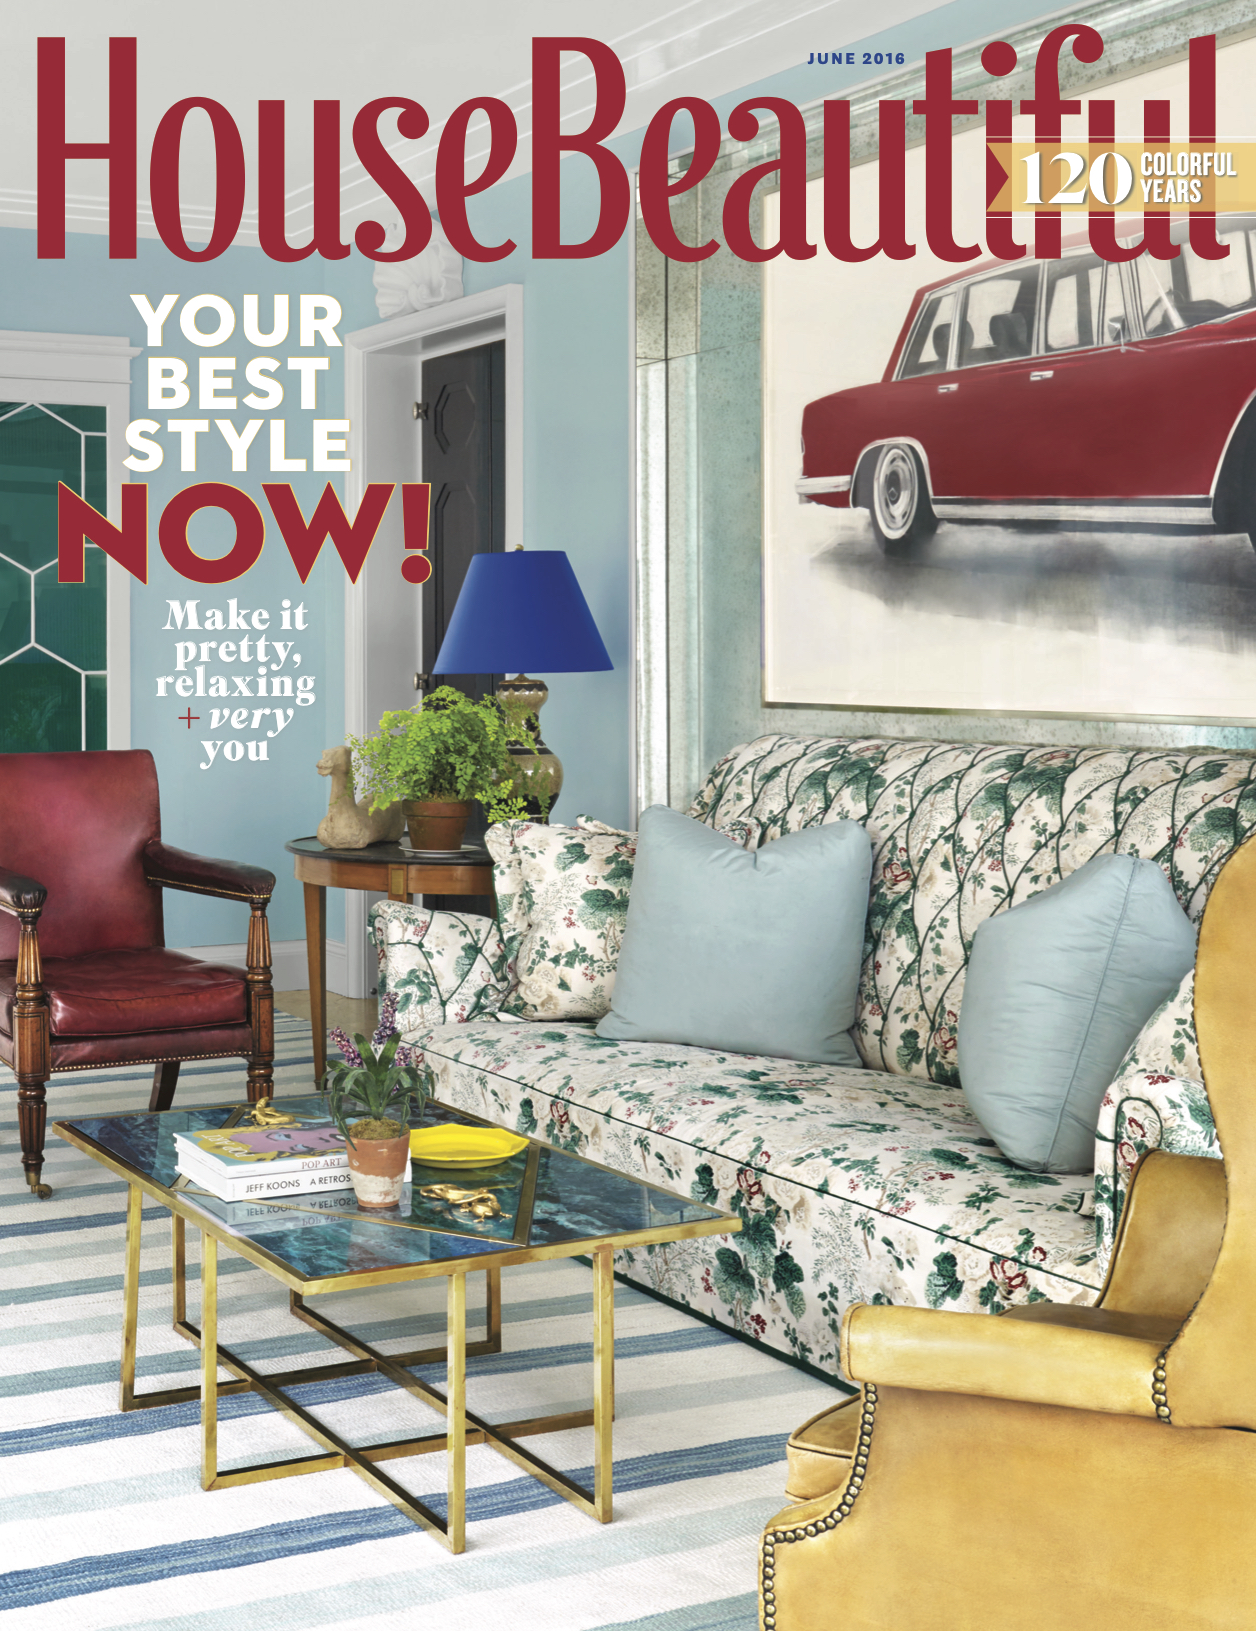 House Beautiful Magazine Gorgeous Service.housebeautiful A New Old Kitchenyoung Huh In